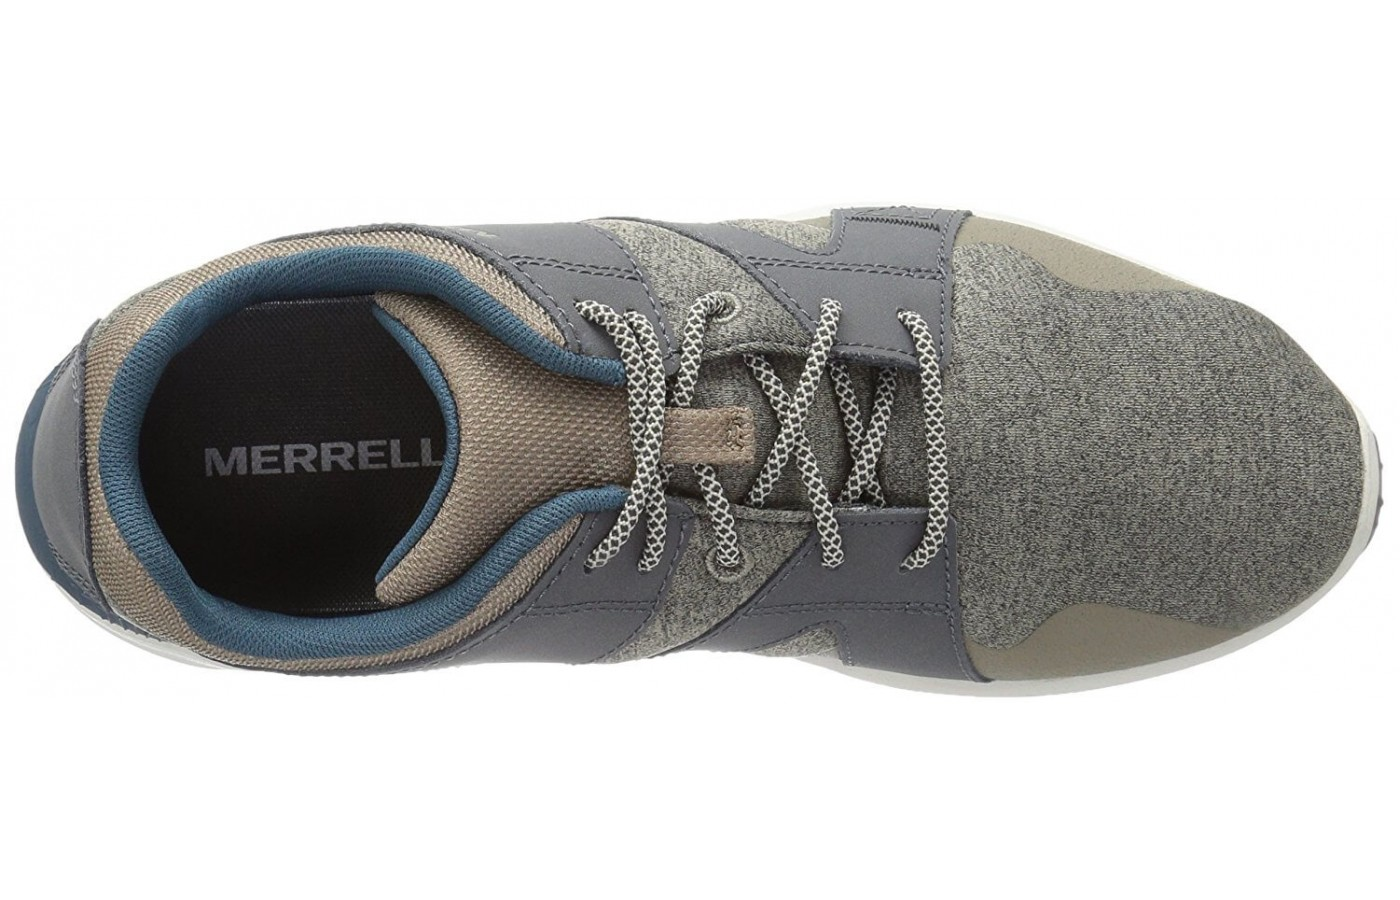 The upper half of the Merrell 1six8 Lace.